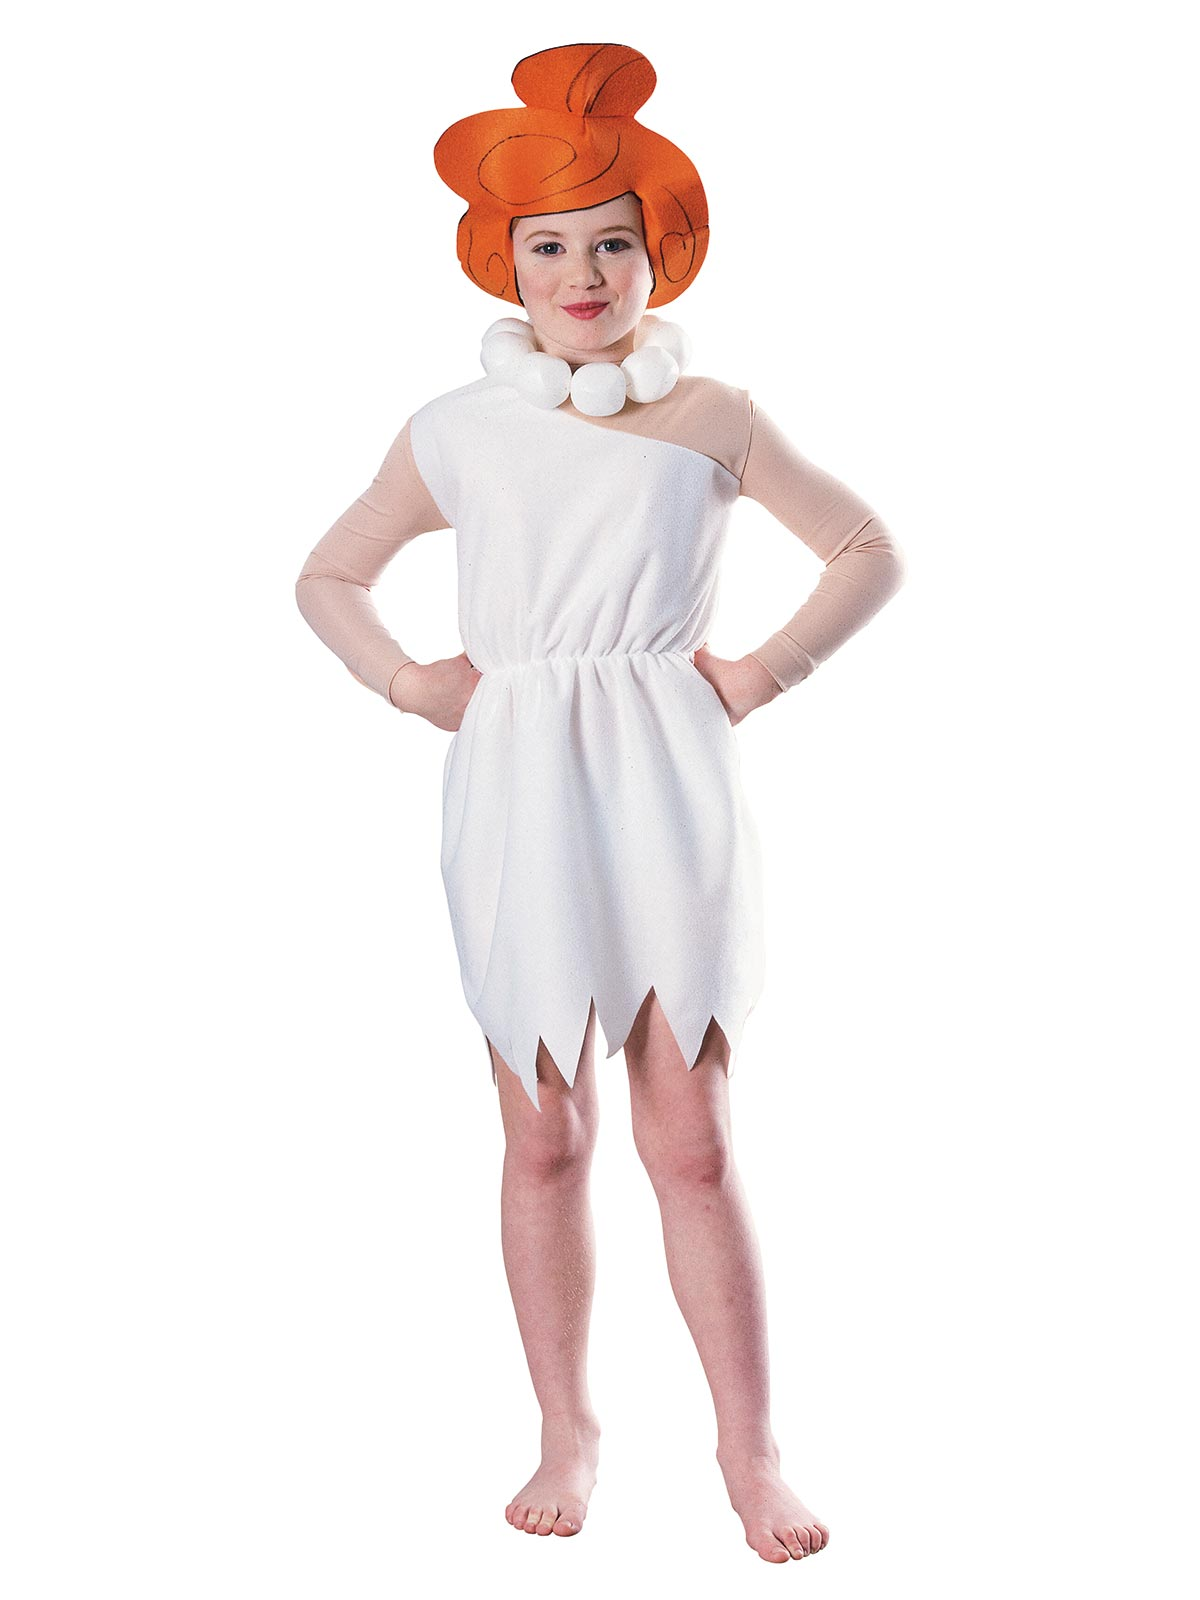 Wilma The Flintstones Child Costume - Buy Online Only